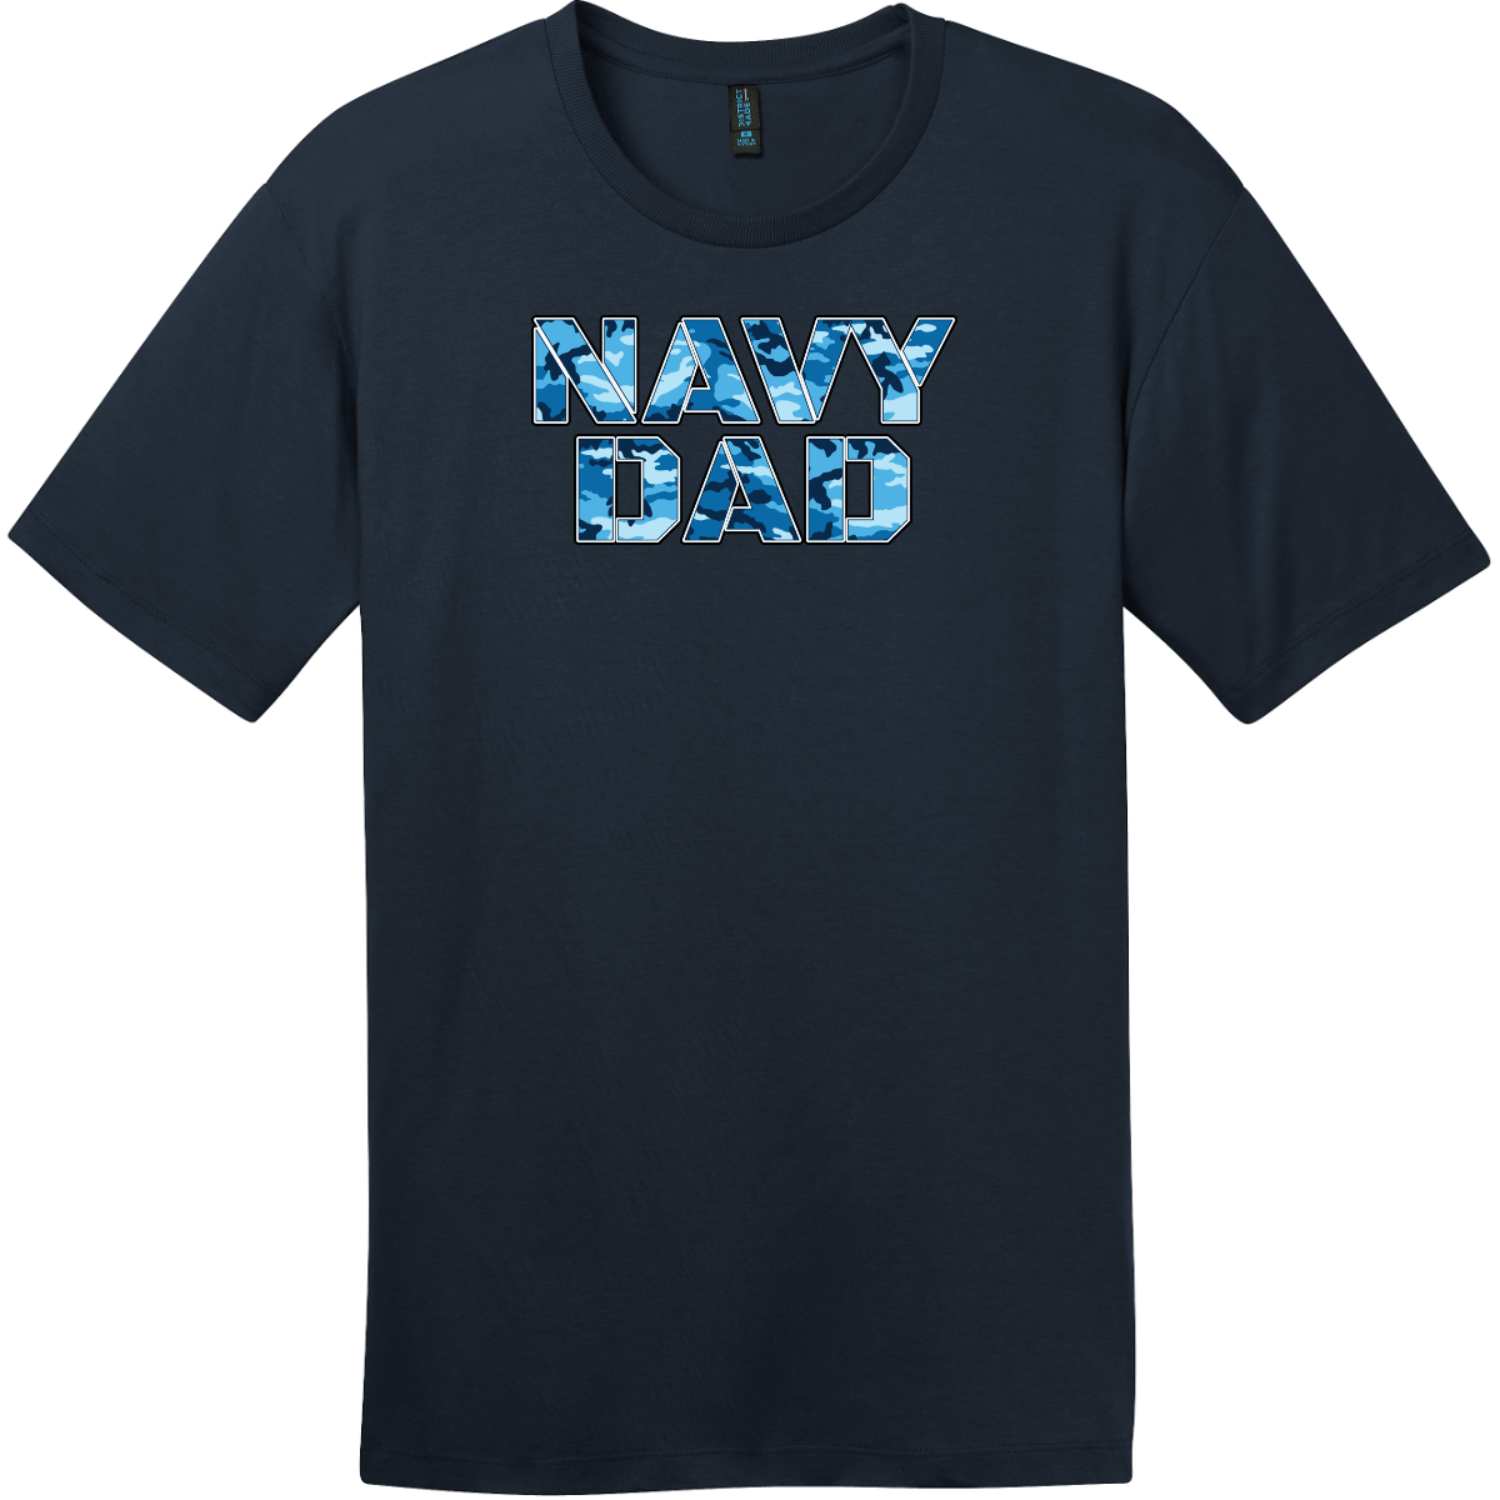 Navy Dad Blue Camo T-Shirt New Navy District Perfect Weight Tee DT104